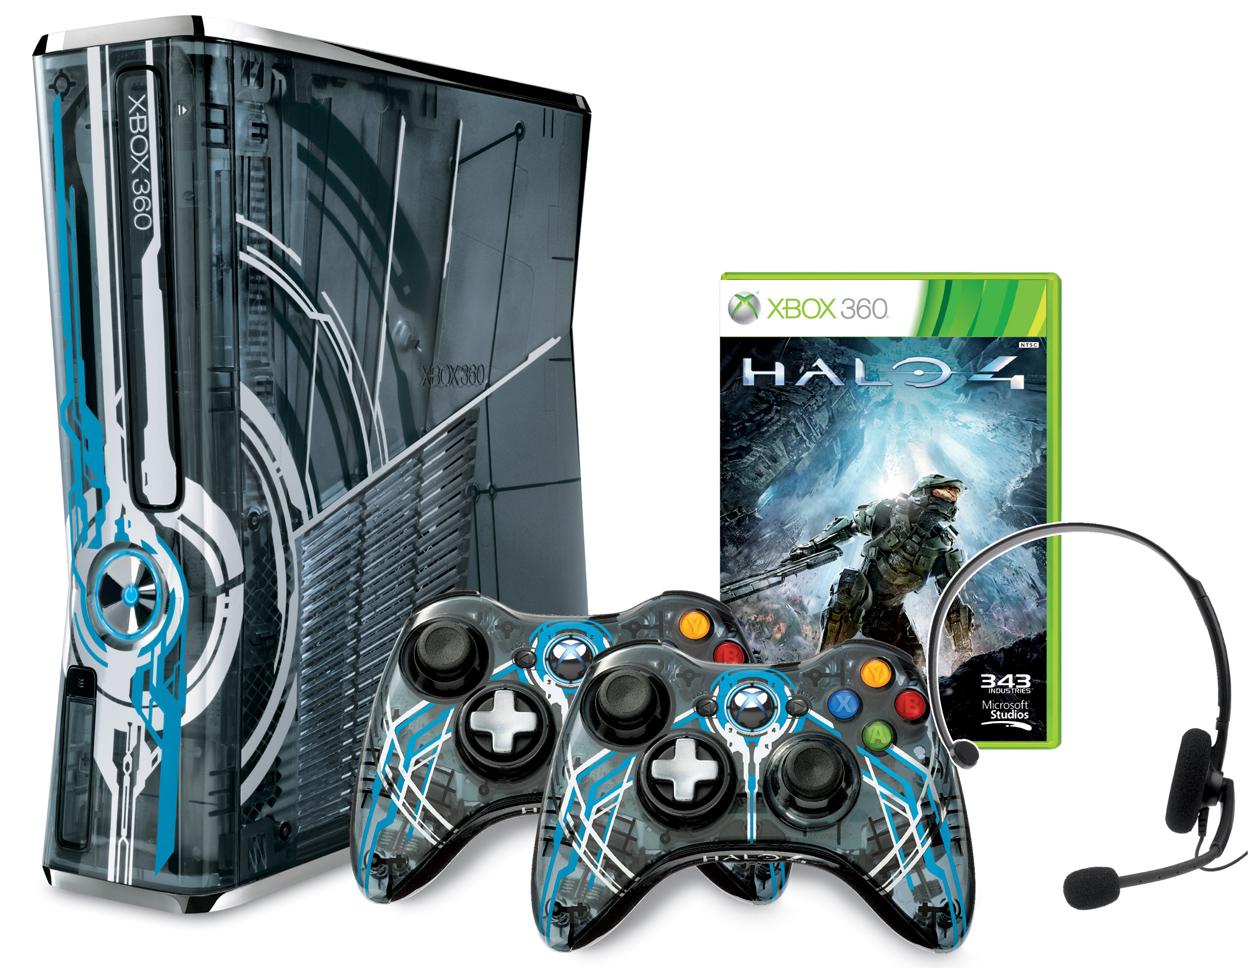 Limited Edition Halo 4 XBox 360 Bundle